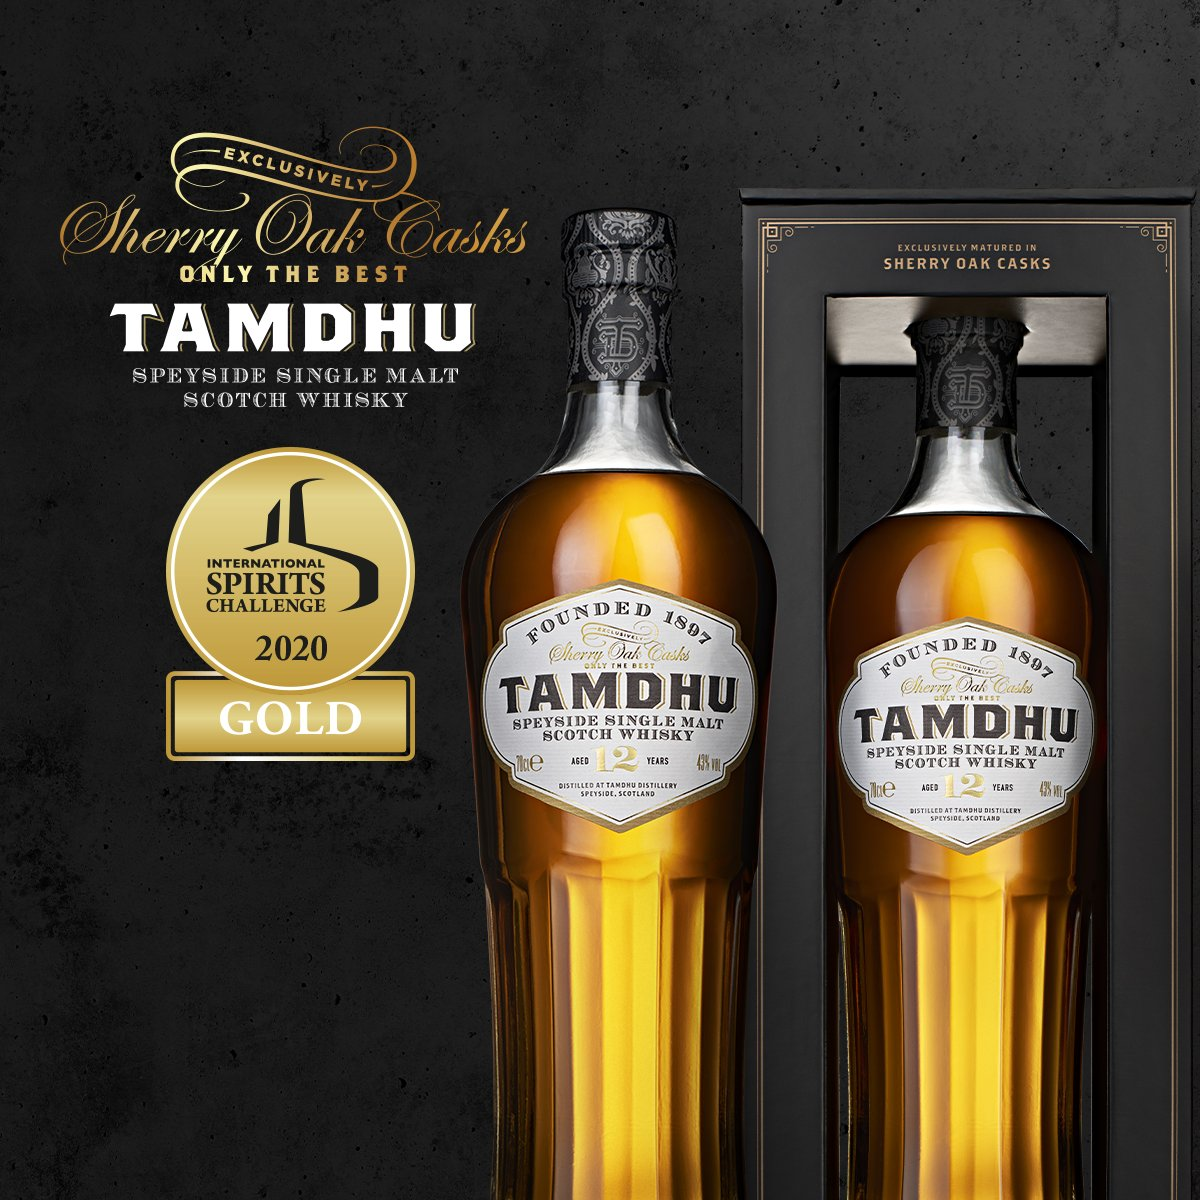 Our Tamdhu 12 and Tamdhu 15 have both won Gold at this year's prestigious ISC Tasting Awards. Because good taste matters. 🥇 https://t.co/lCjwYt8D3A